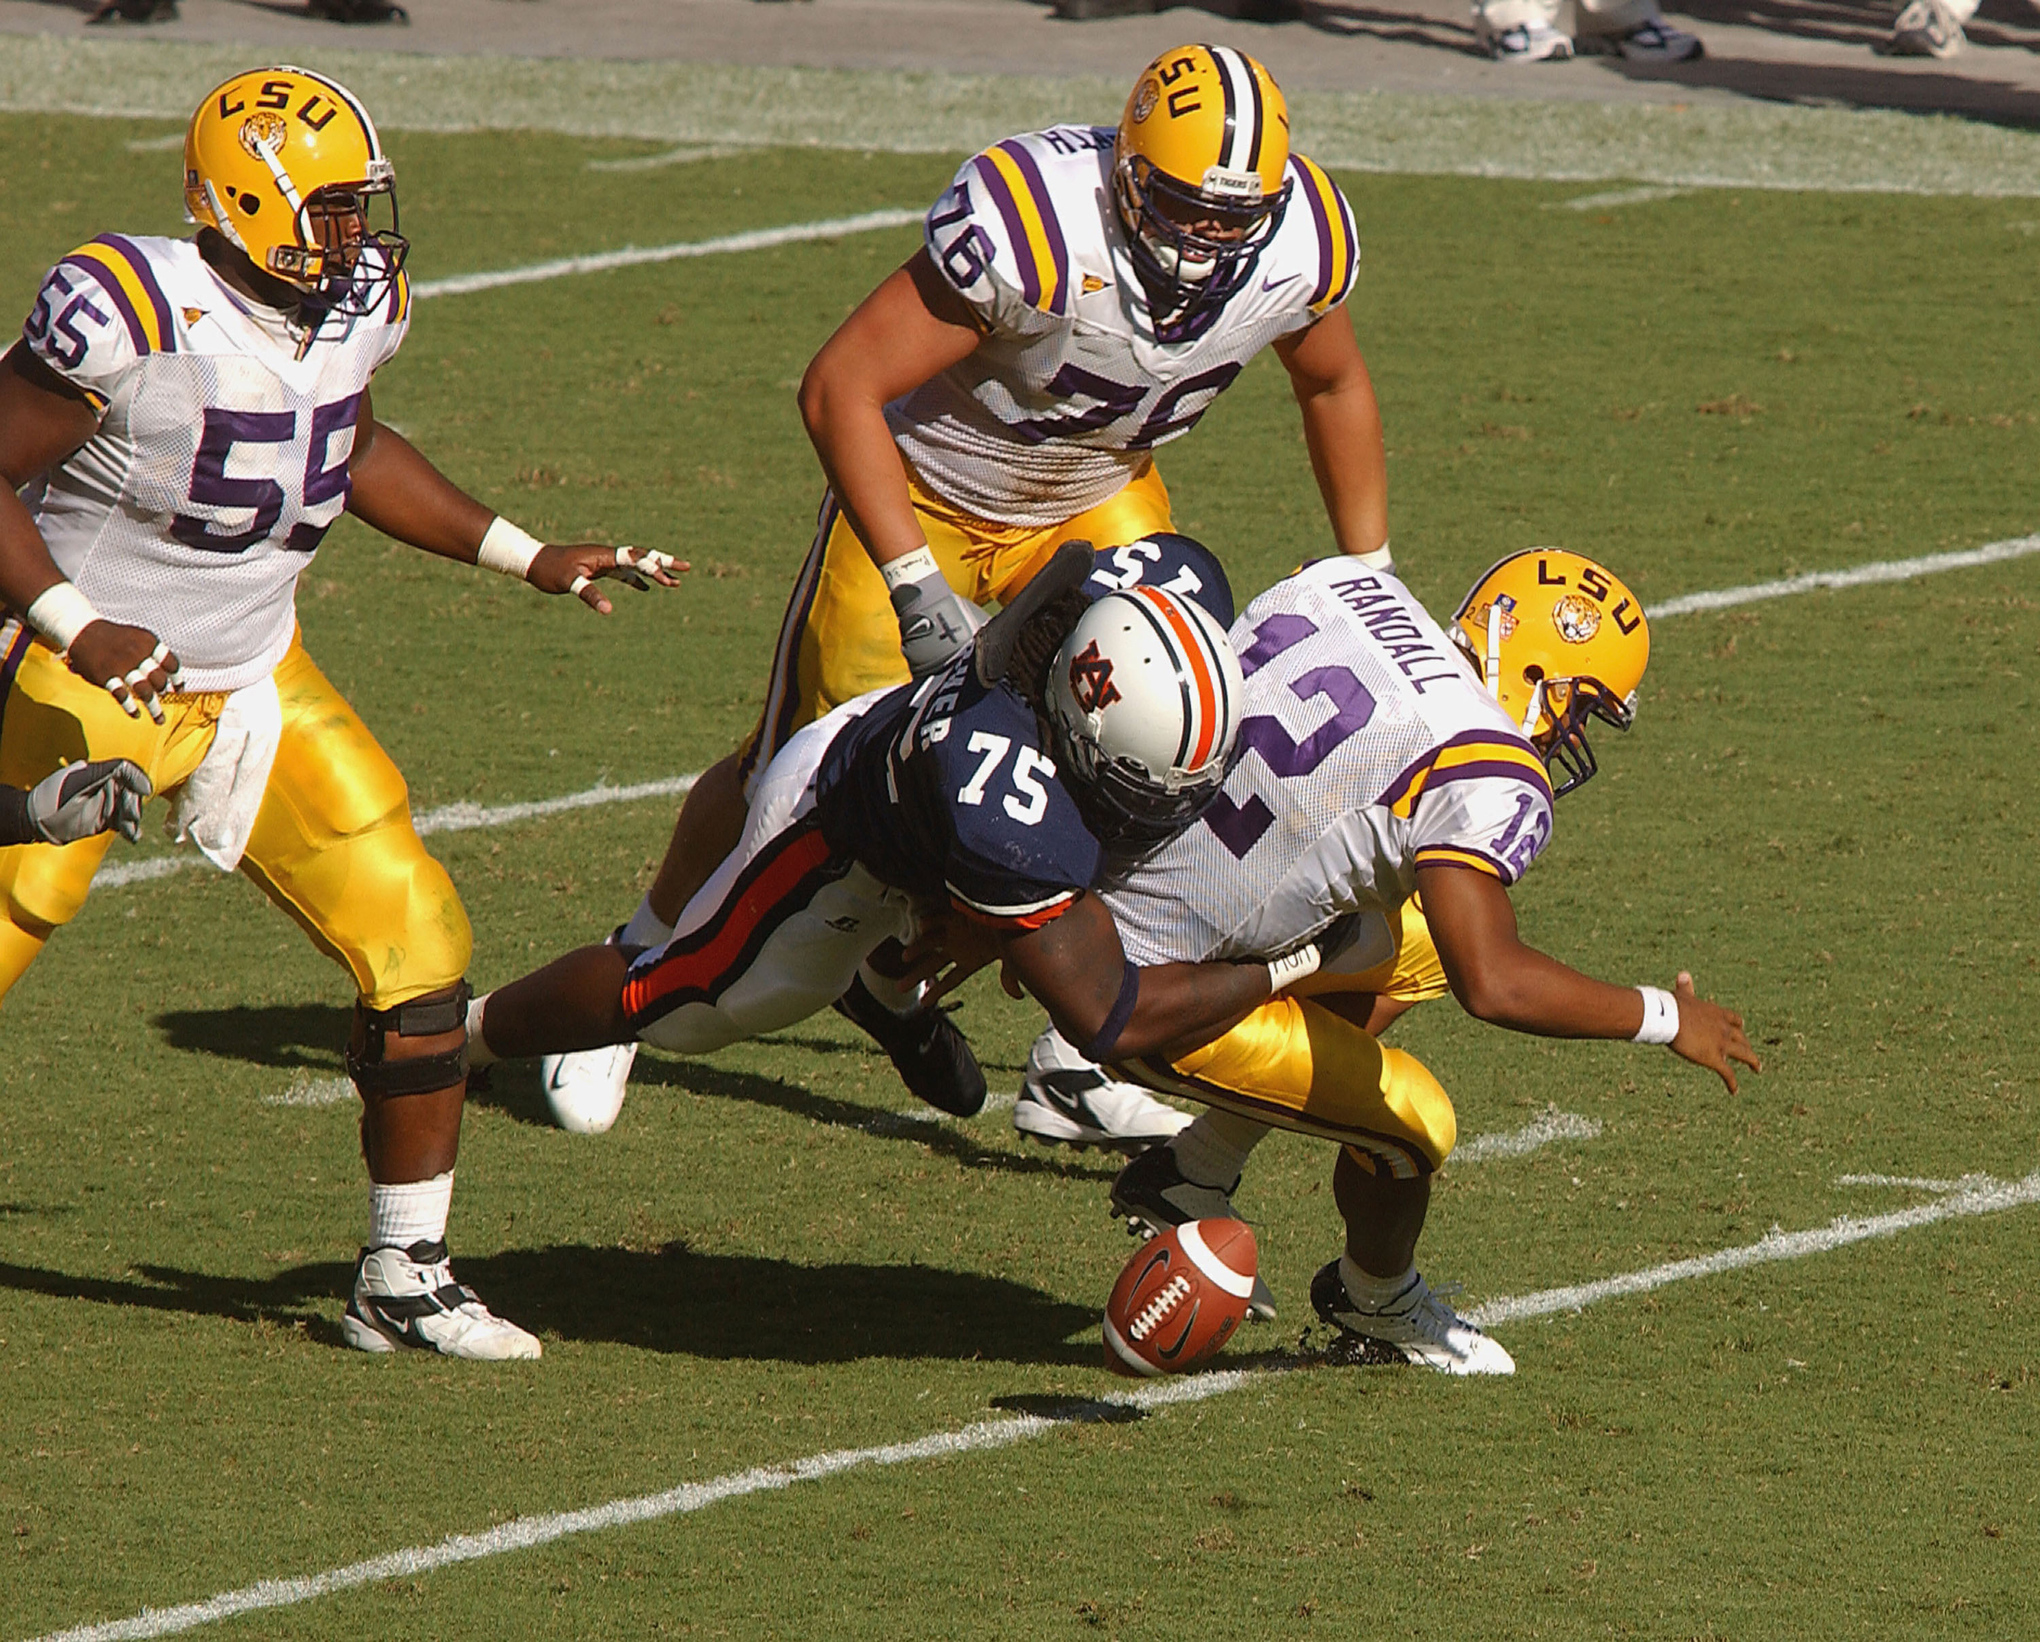 Marcus Randall #12 of the LSU Tigers fumbles after being hit by Stanley McClover #75 of the Auburn Tigers in a game on September 18, 2004 at Jordan-Hare Stadium in Auburn, Alabama.